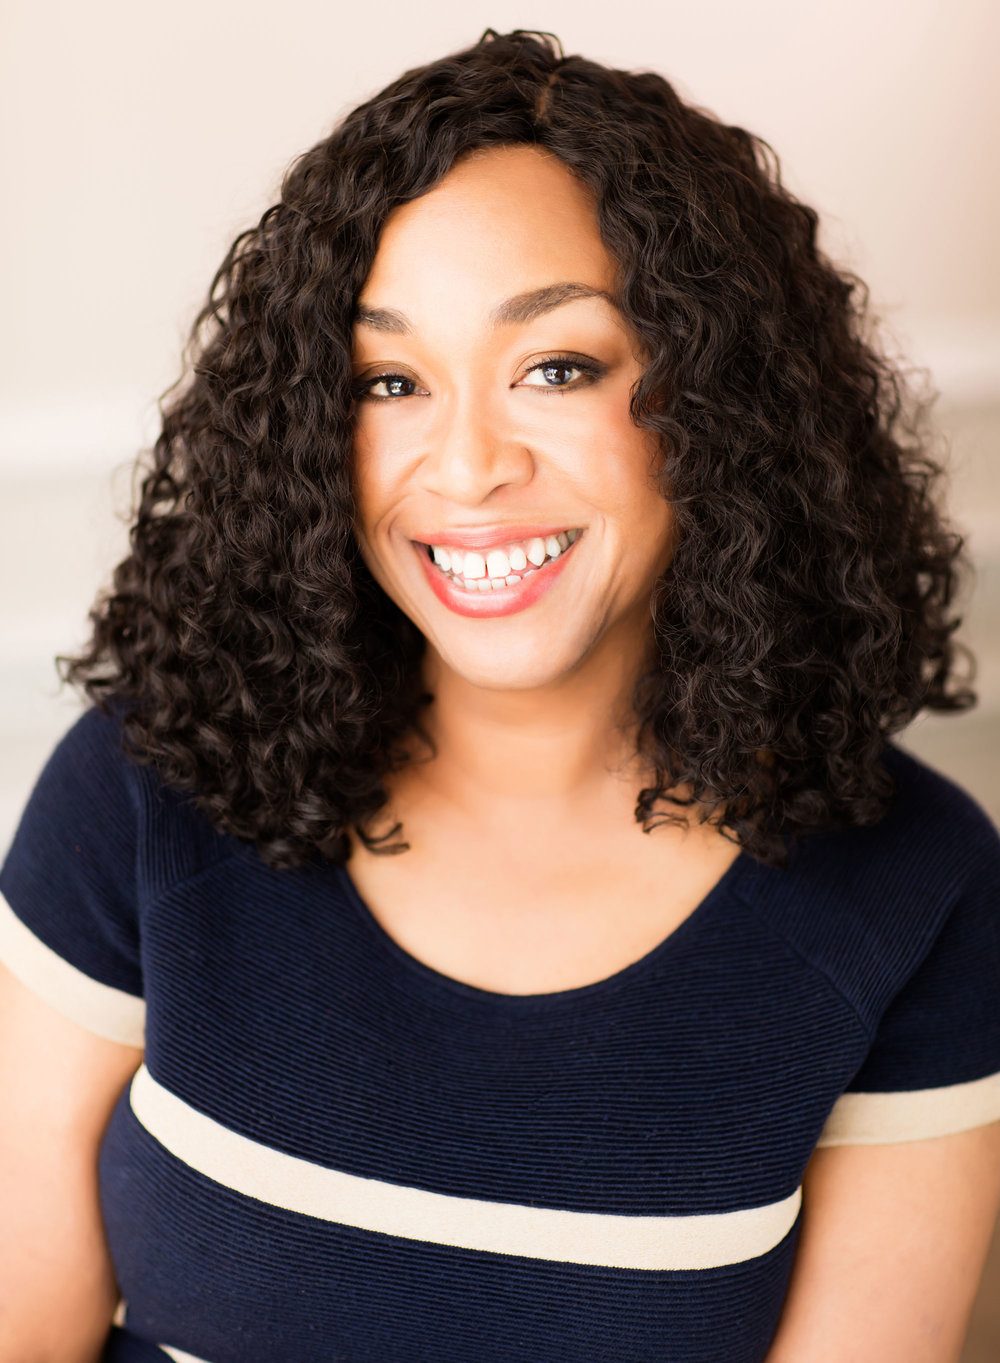 Shonda Rhimes - Shonda Rhimes is the prolific writer, executive producer and creator of the hit ABC series